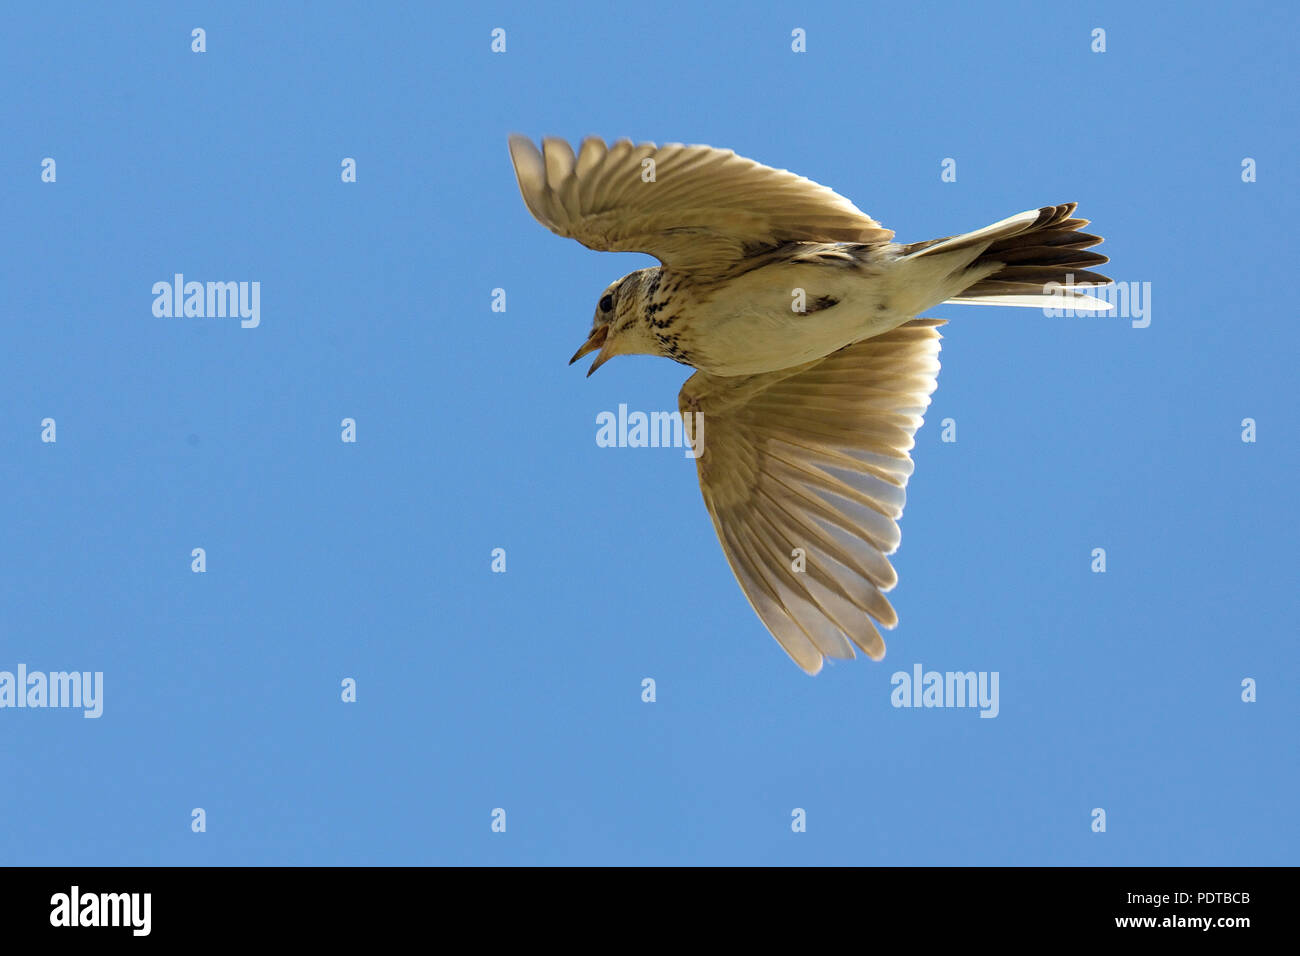 Skylark singing against a blue sky. - Stock Image